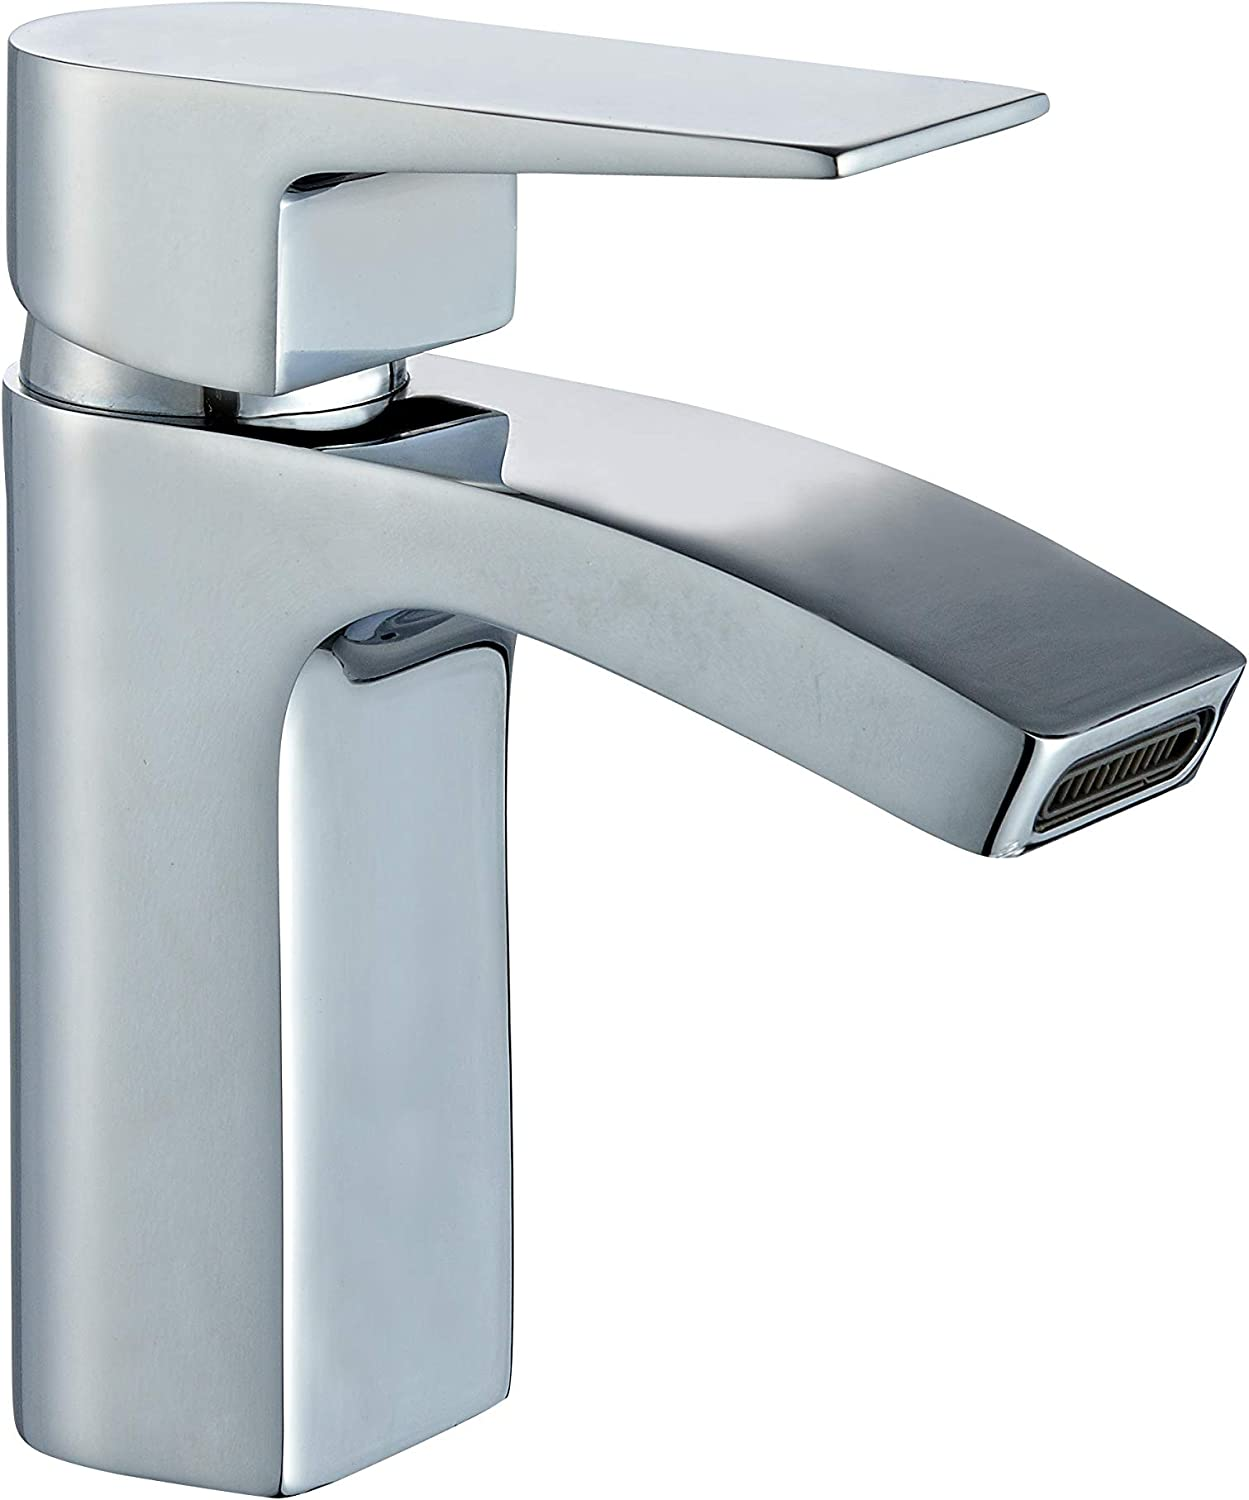 Laggi 532099 Dobson Sink Tap, Chrome-Plated